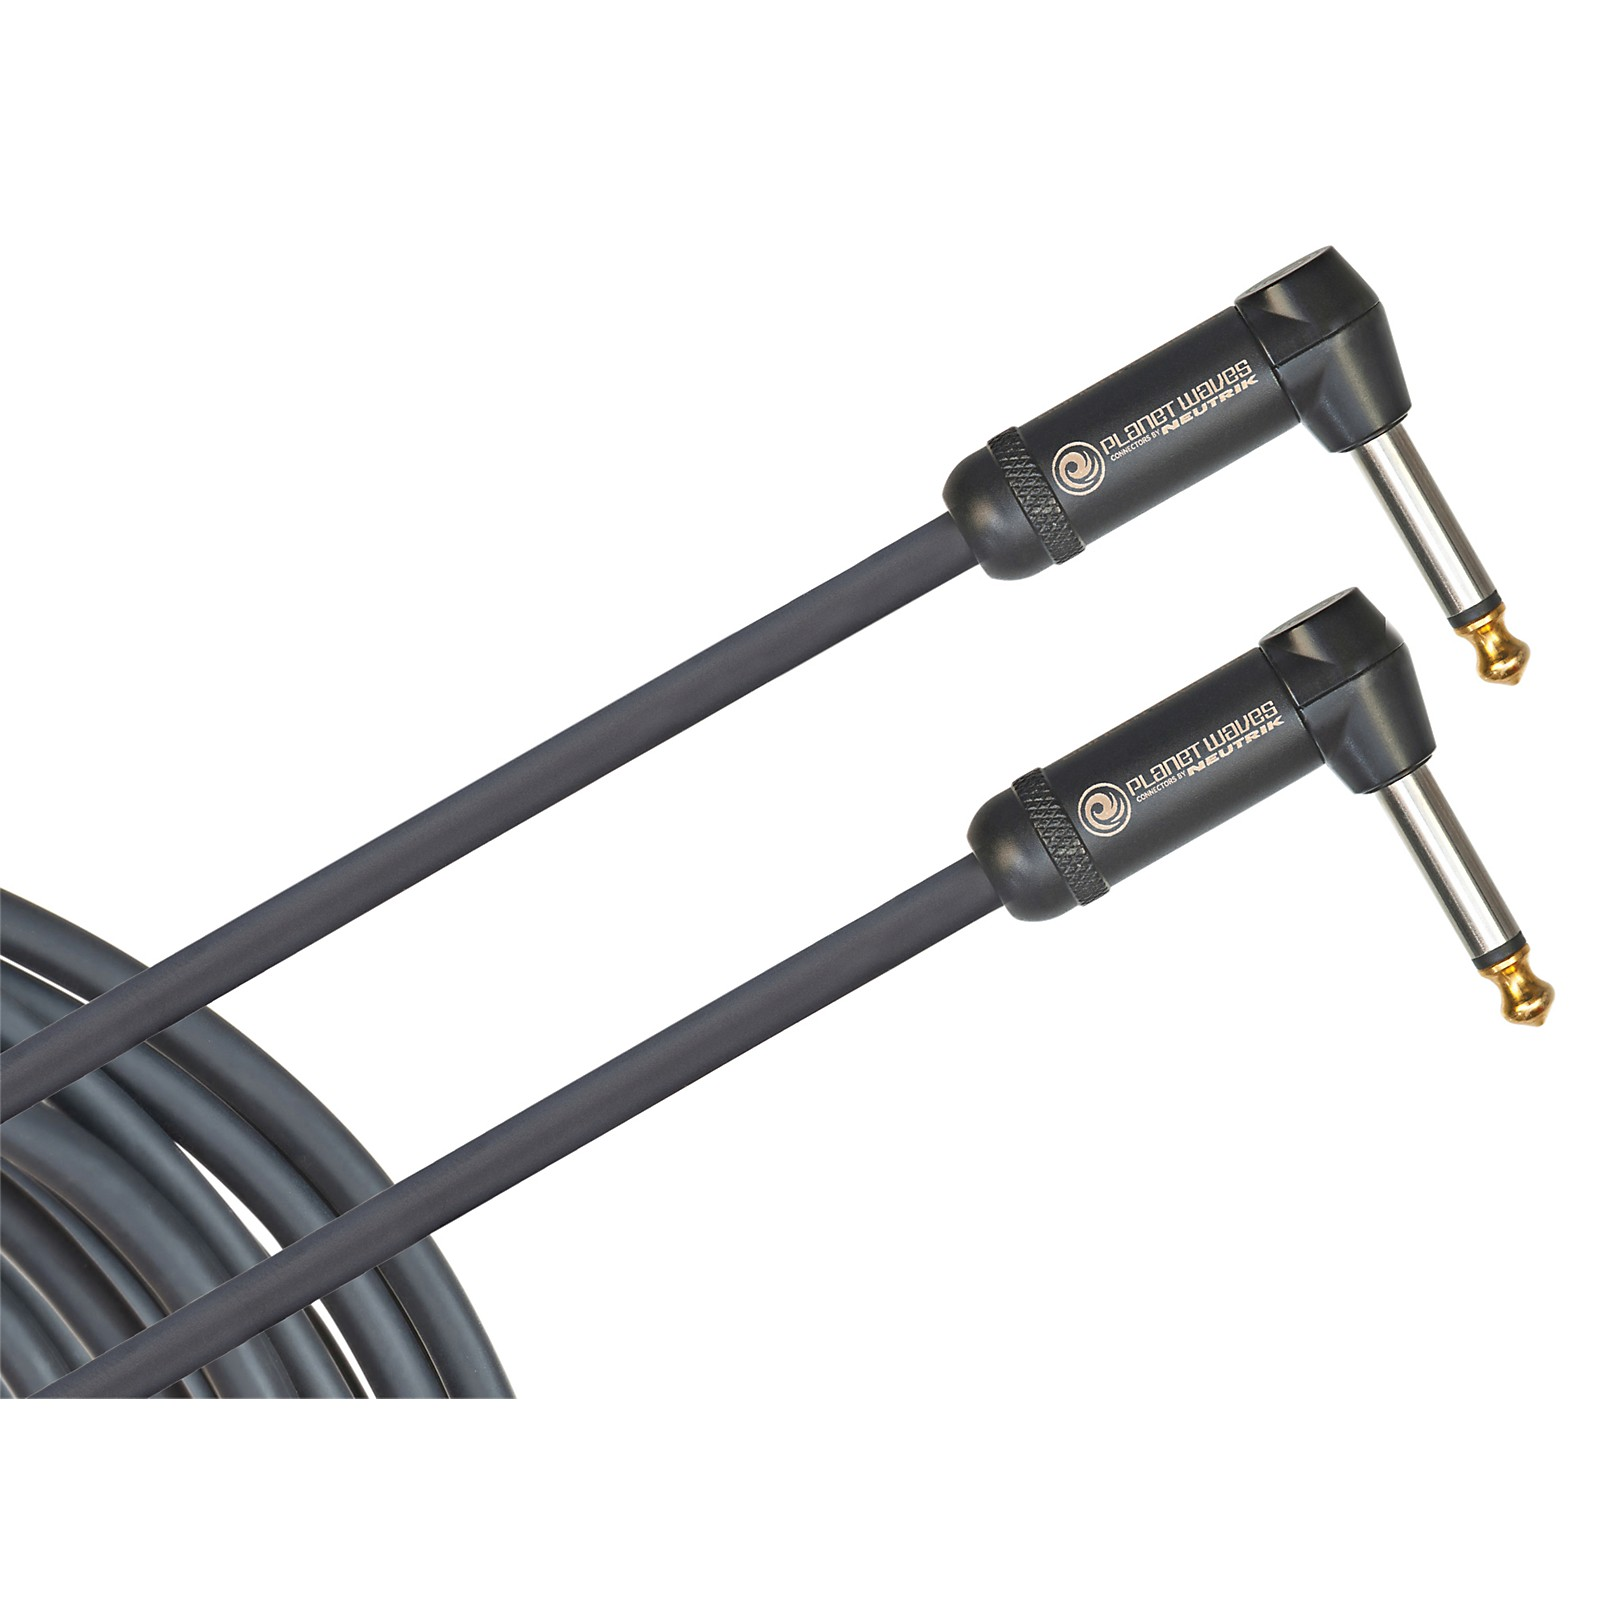 D'Addario Planet Waves American Stage Series Instrument Cable - Right to Right